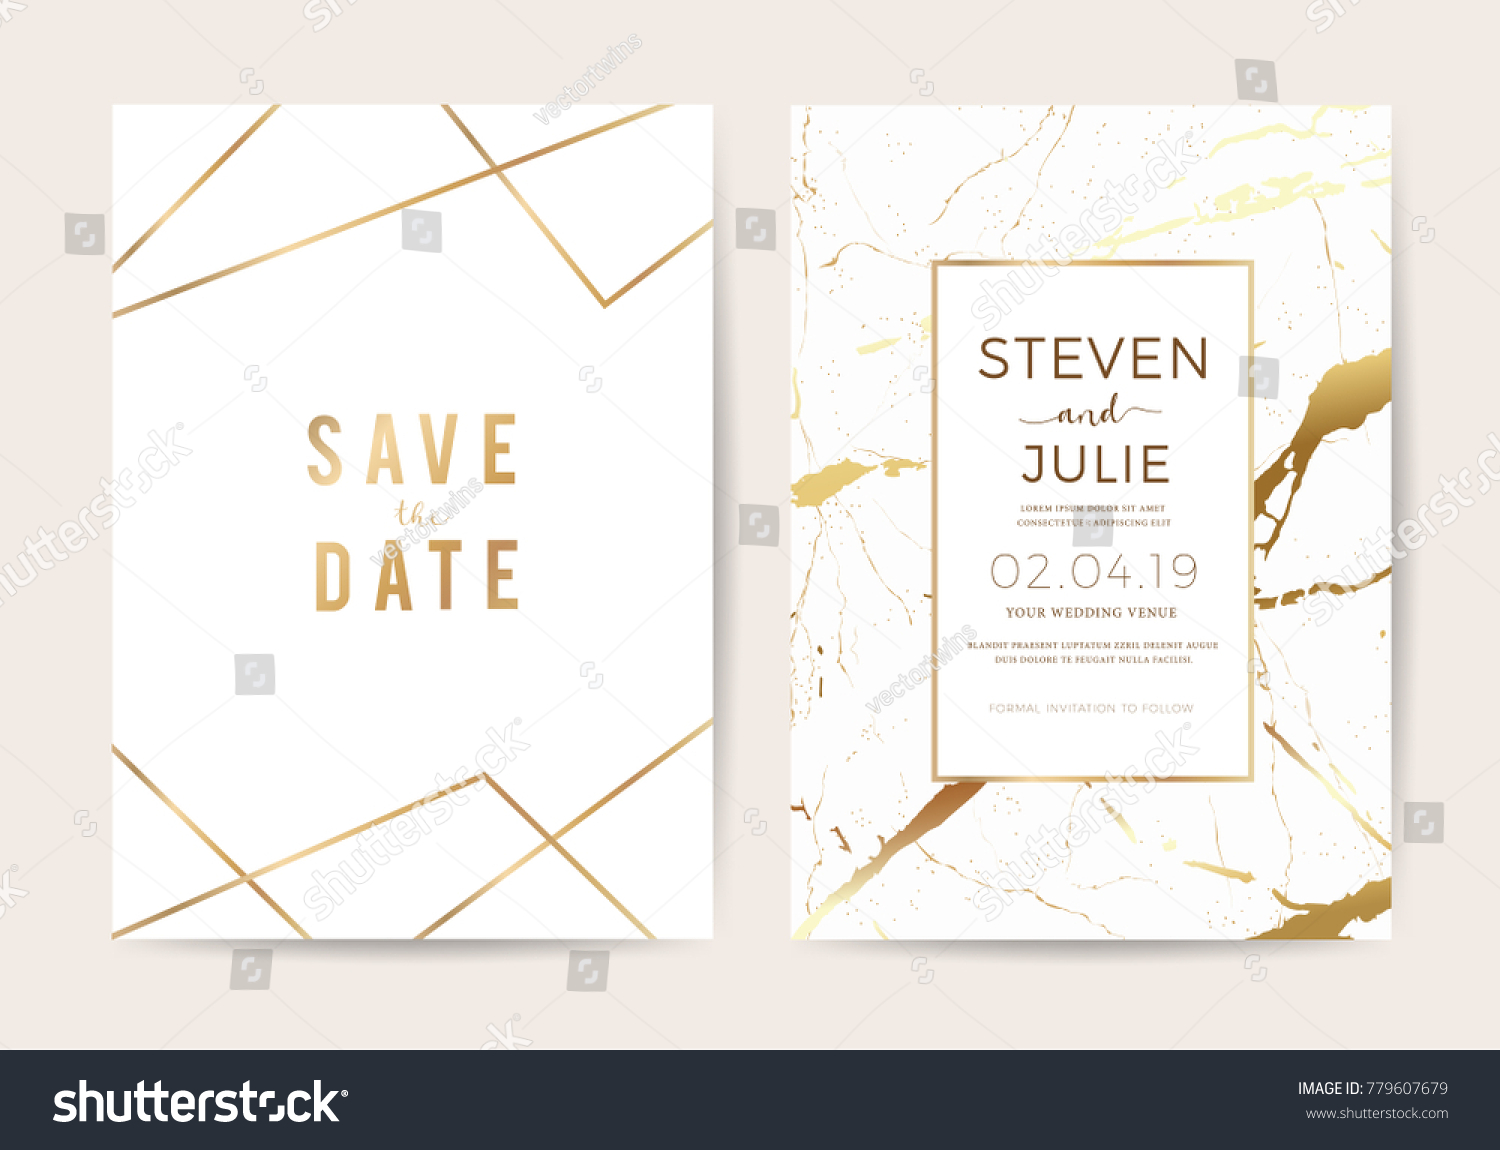 Luxury wedding invitation cards gold marble stock vector 779607679 luxury wedding invitation cards with gold marble texture and geometric pattern vector design template stopboris Images